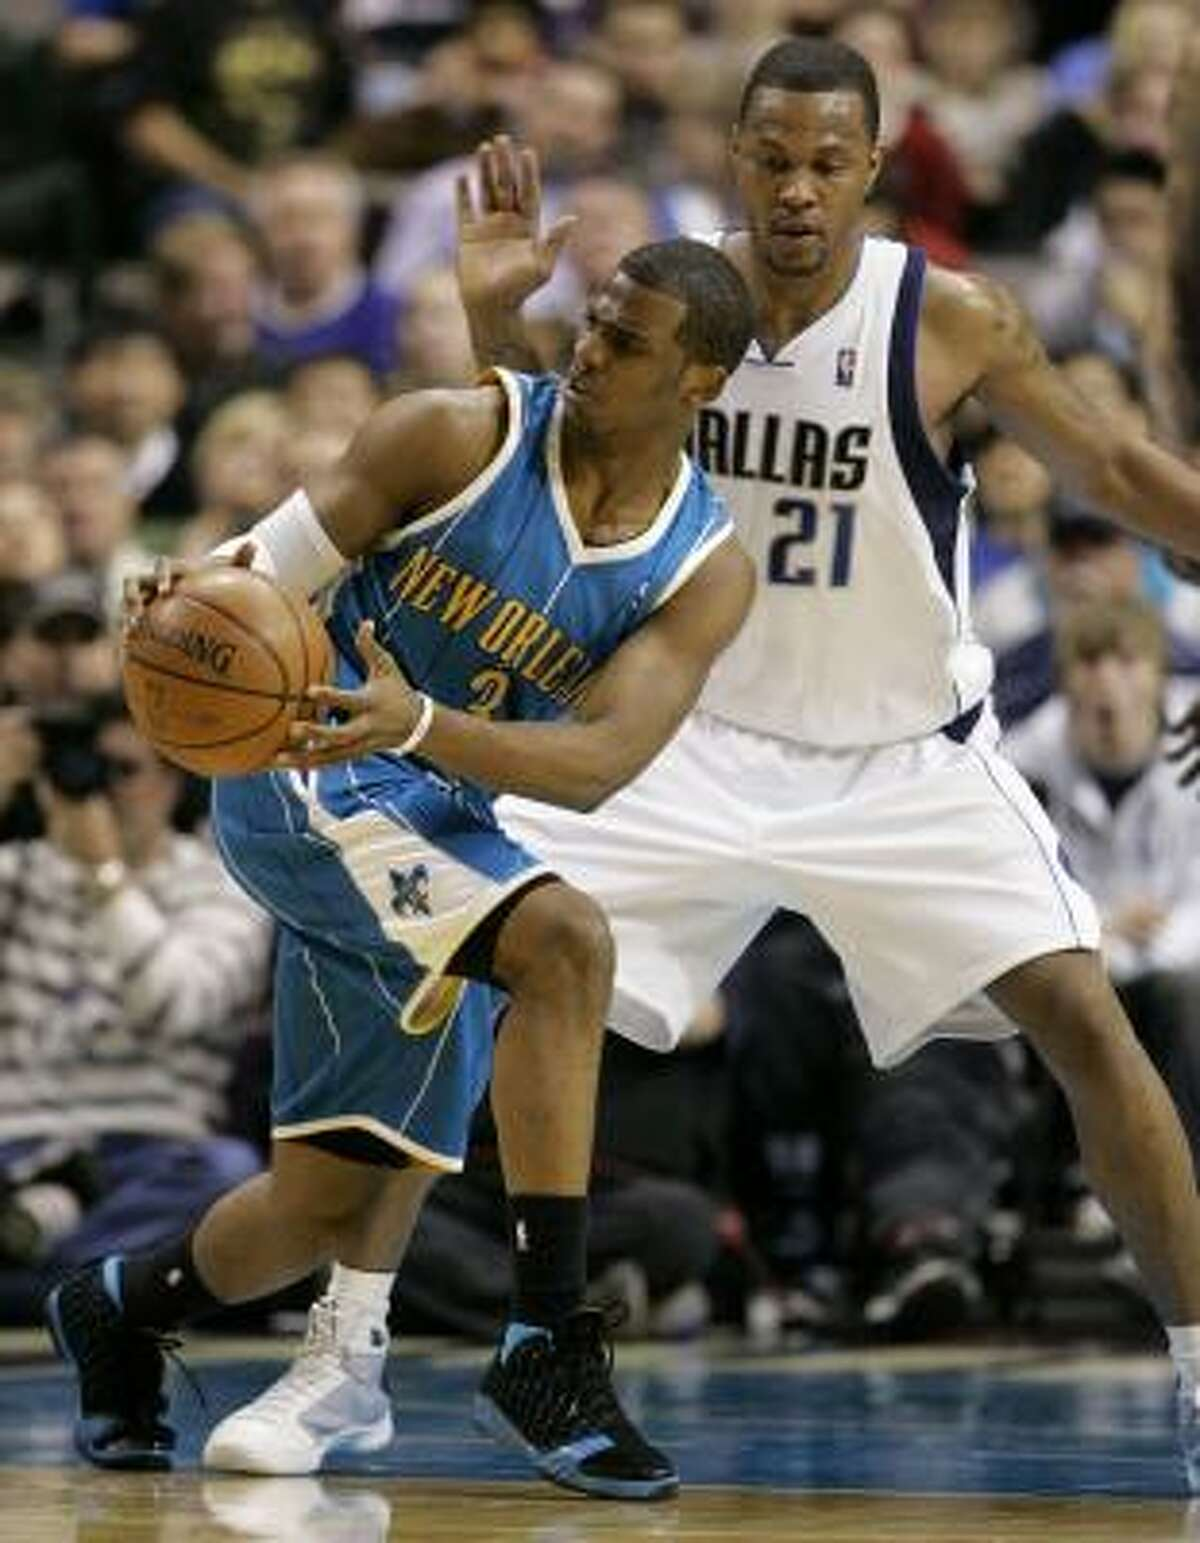 Chris Paul nearly showed Jason Kidd what a quadruple-double looks like, putting up 33 points, 11 assists, 10 rebounds and seven steals in the New Orleans Hornets' 104-97 victory over the slumping Dallas Mavericks on Wednesday night.